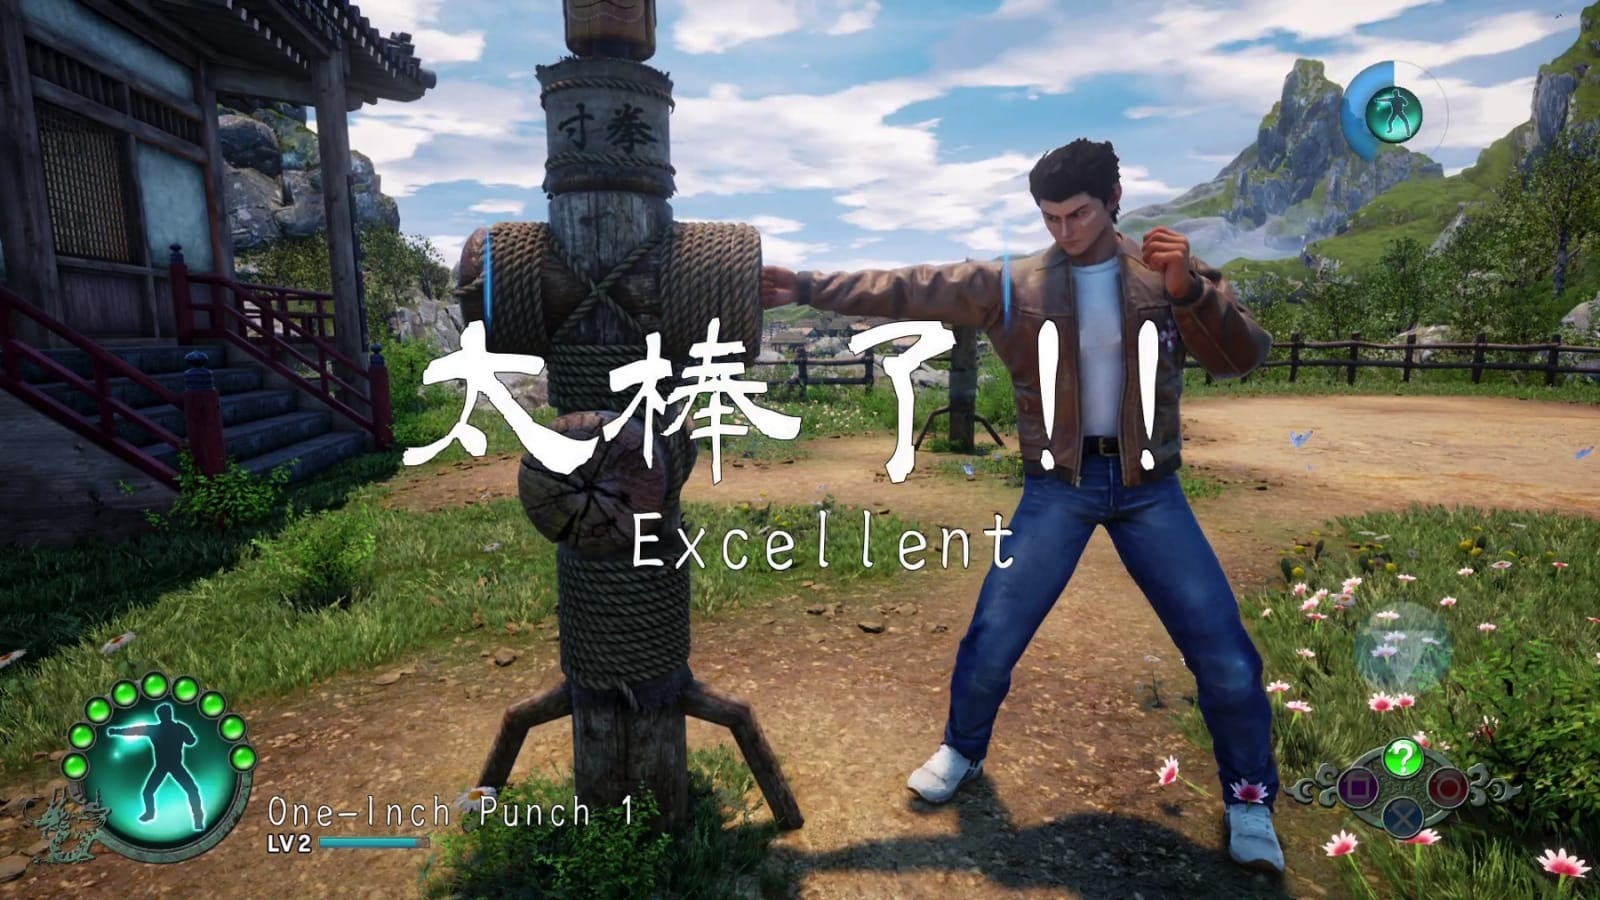 Epic will cover refunds for unhappy 'Shenmue 3' backers